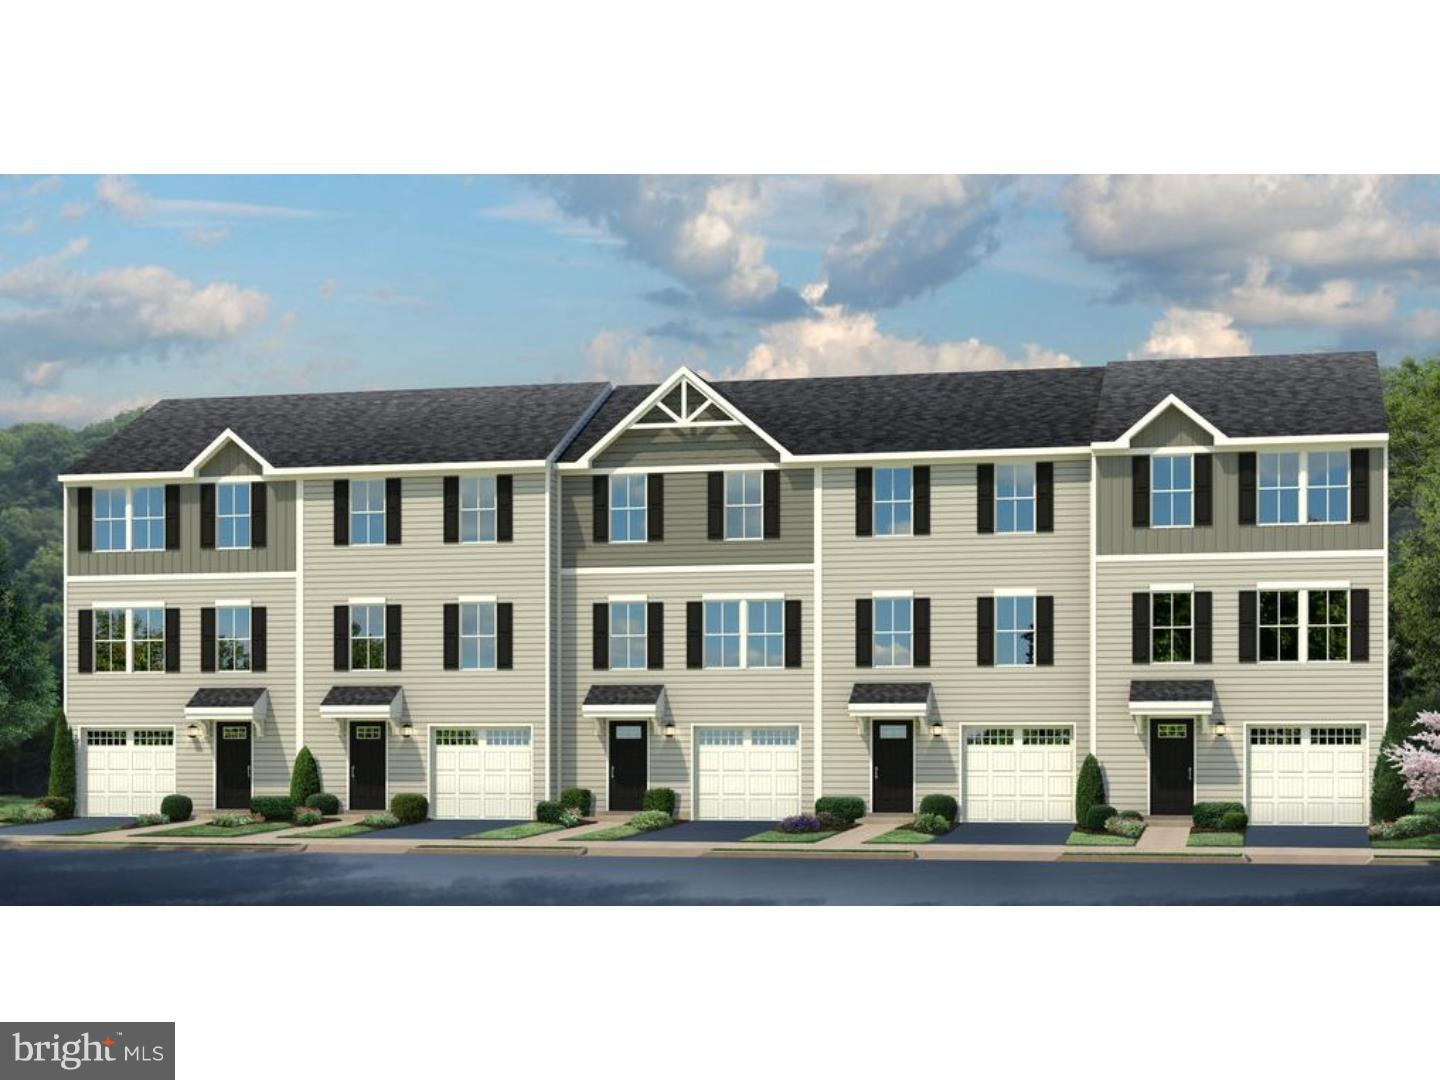 Lowest priced new garage townhomes for less than rent in the northern Middletown area minutes from R